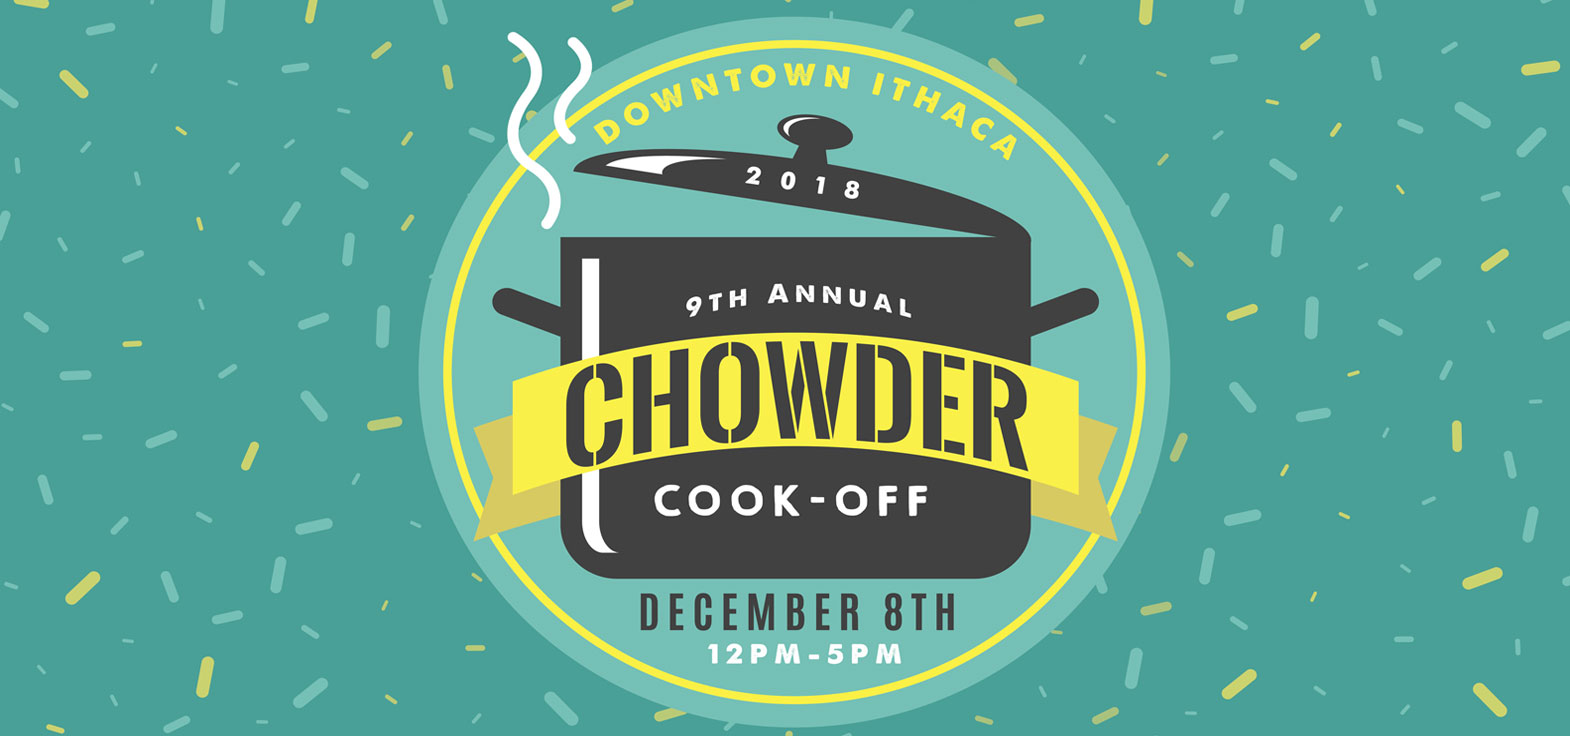 9th Annual Chowder Cook-Off Image